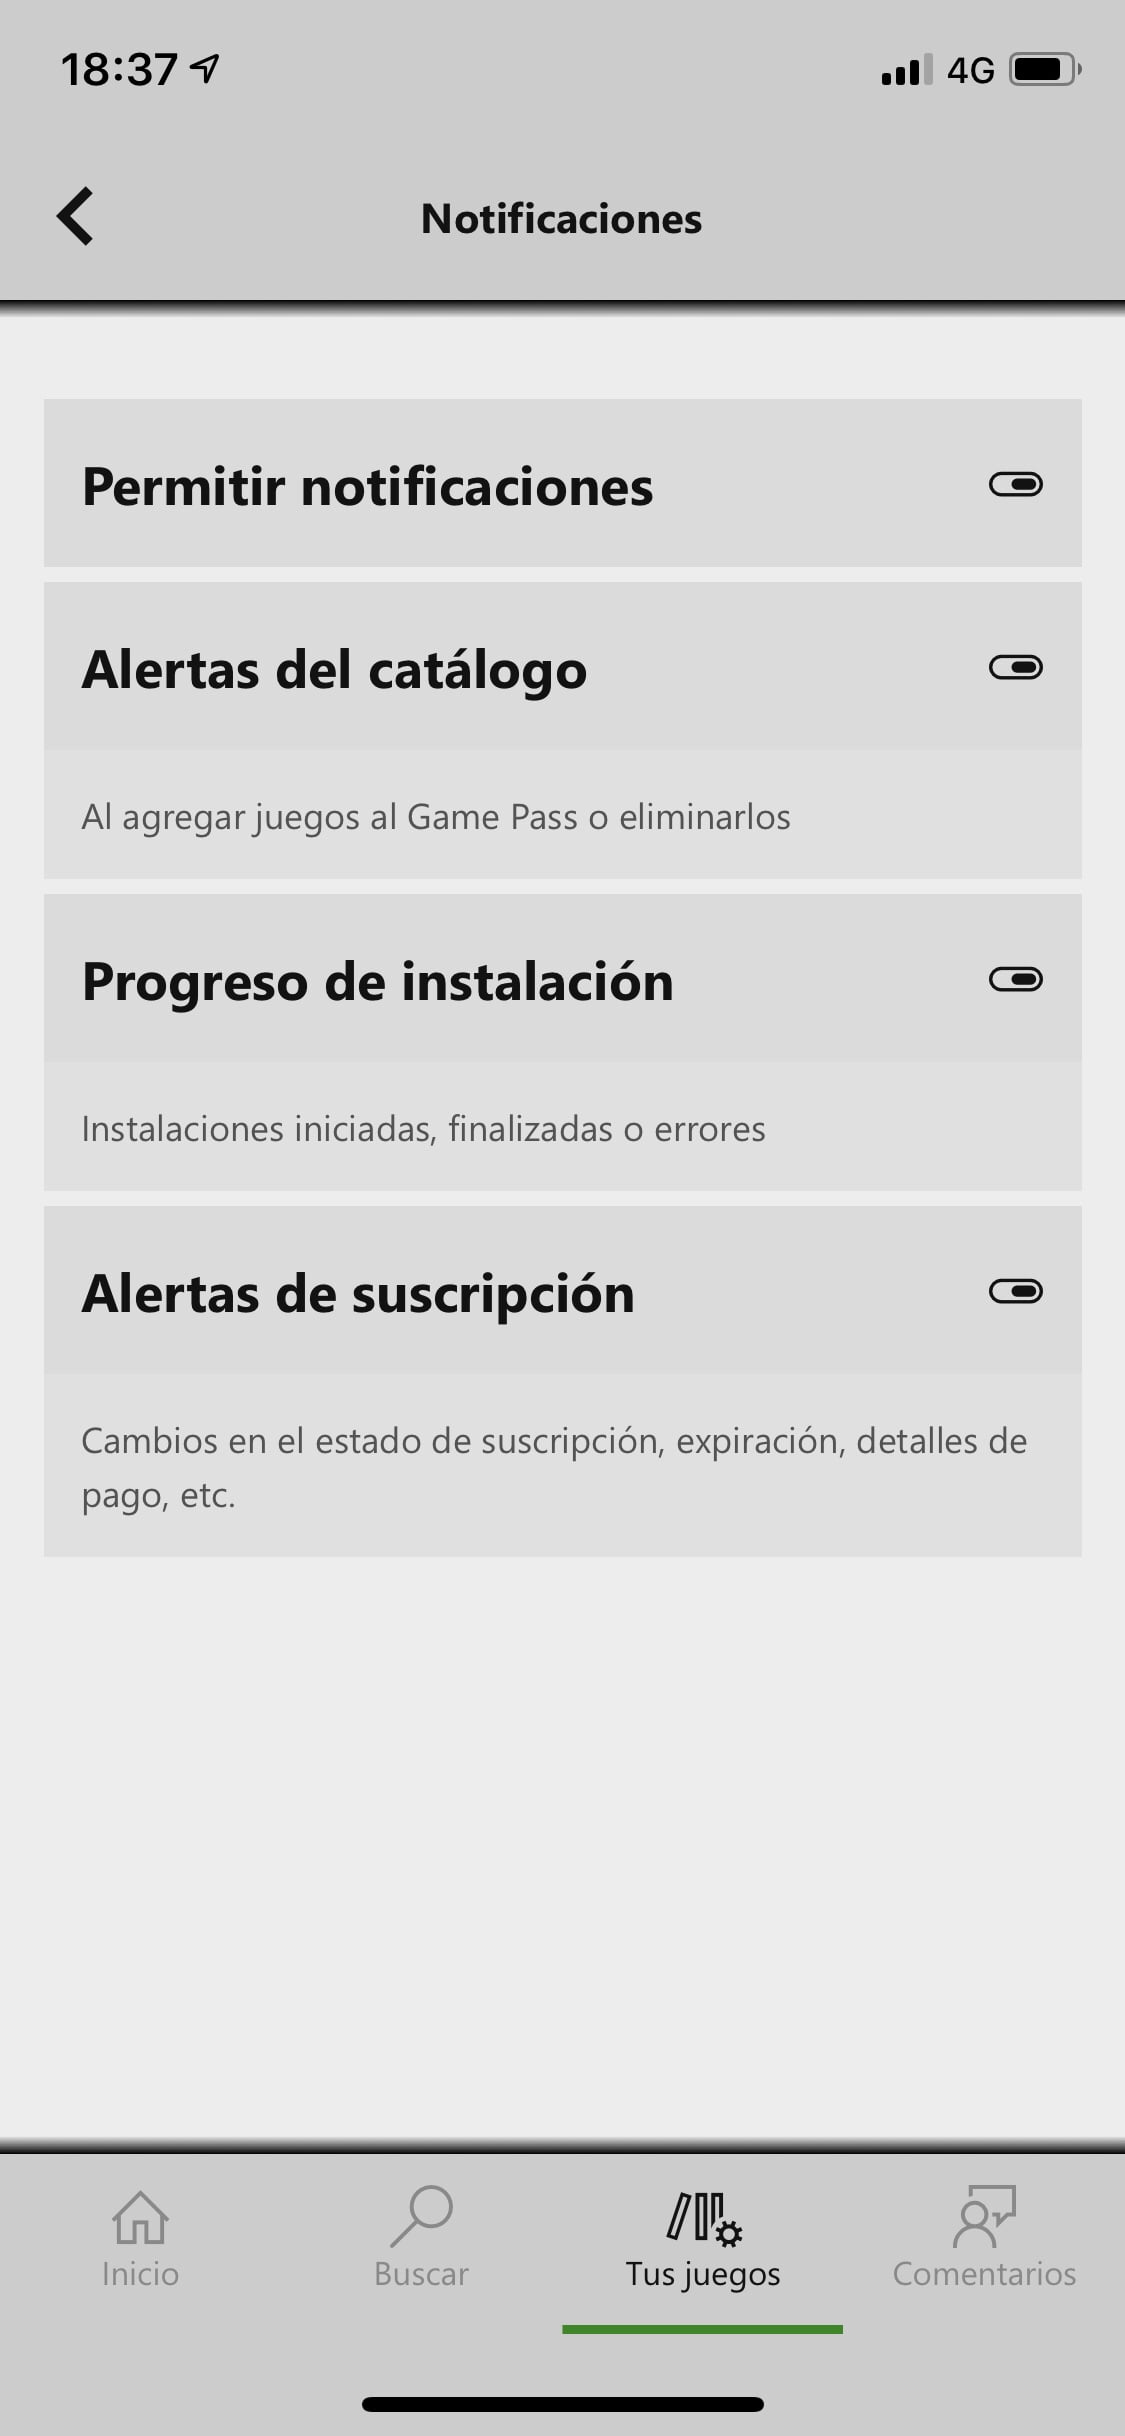 Menú de notificaciones de Xbox Game Pass para iOS